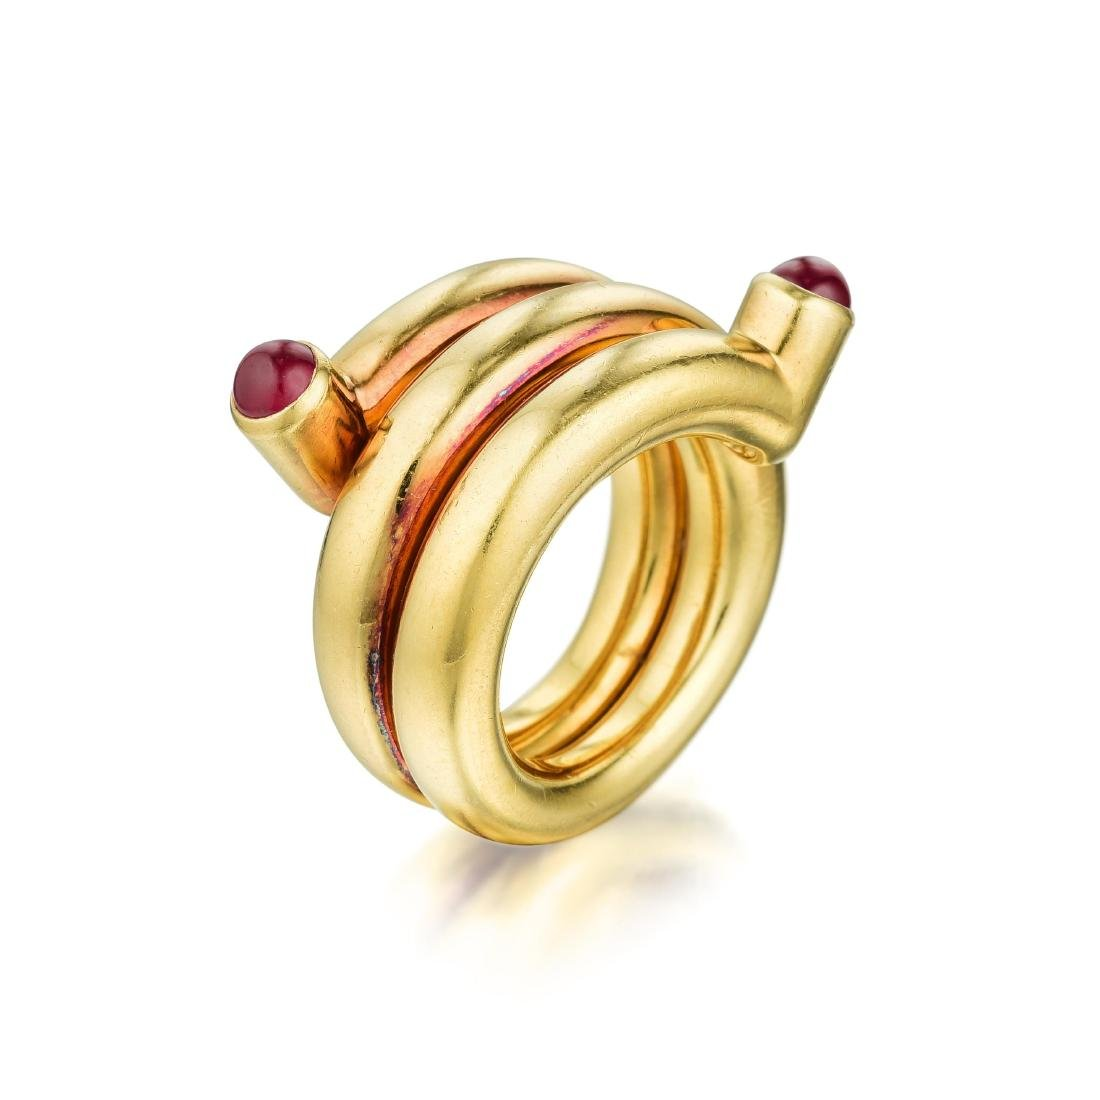 Tiffany & Co. Schlumberger Ruby Double Coil Ring - 2